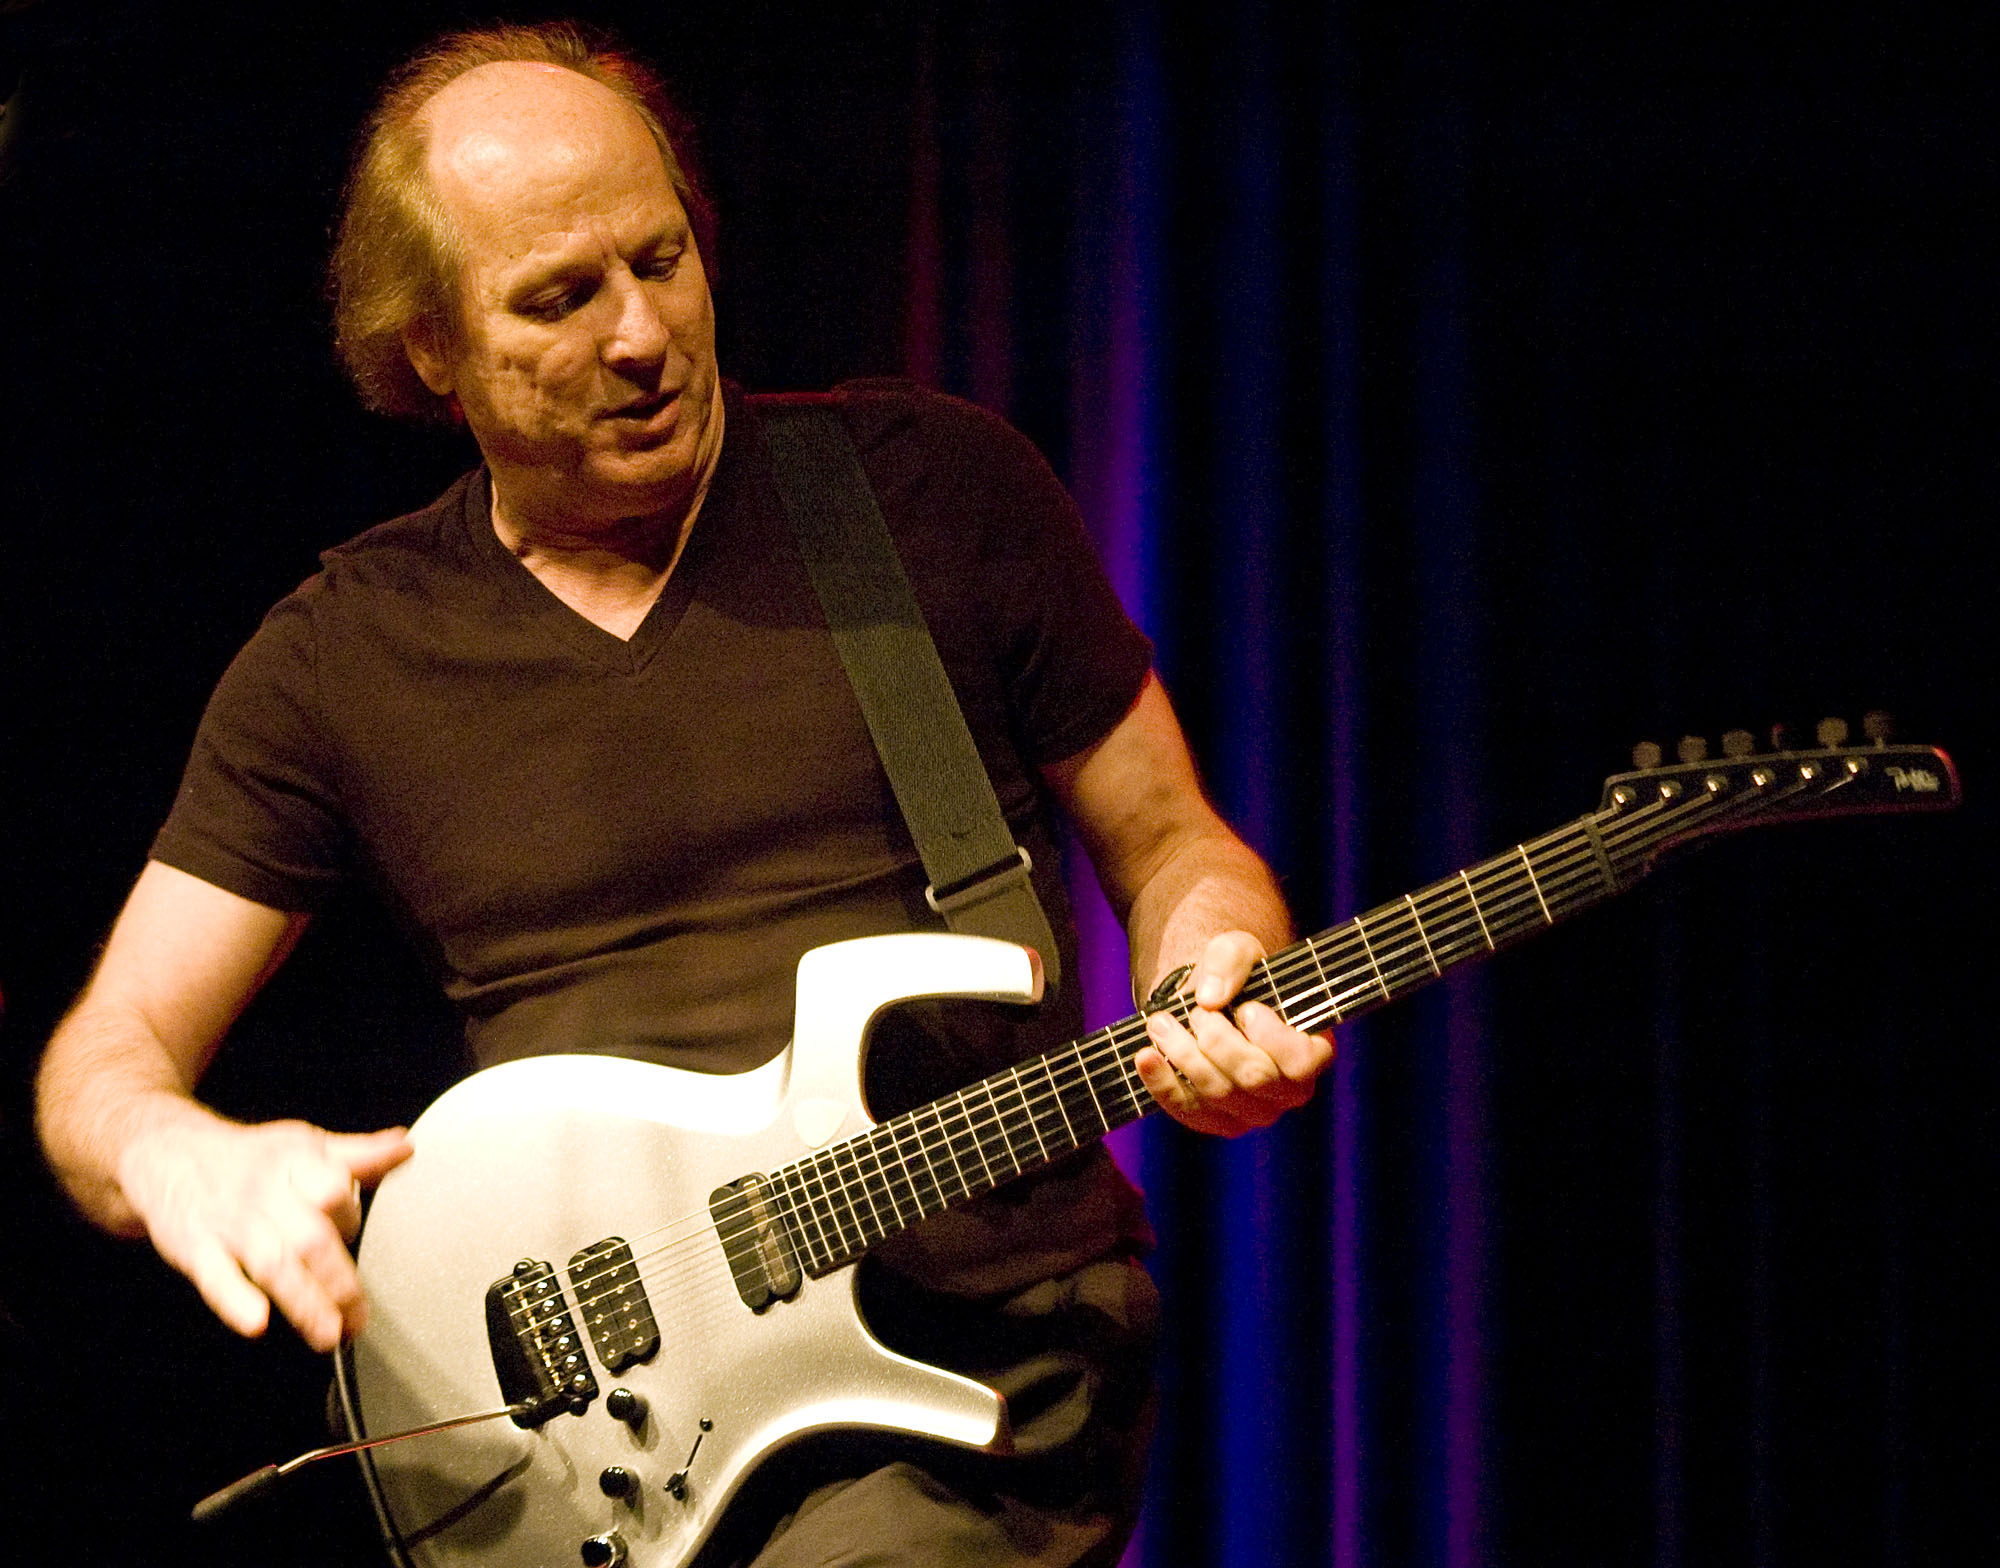 Adrian Belew, Performing with Power Trio at Enjoy Jazz 2010